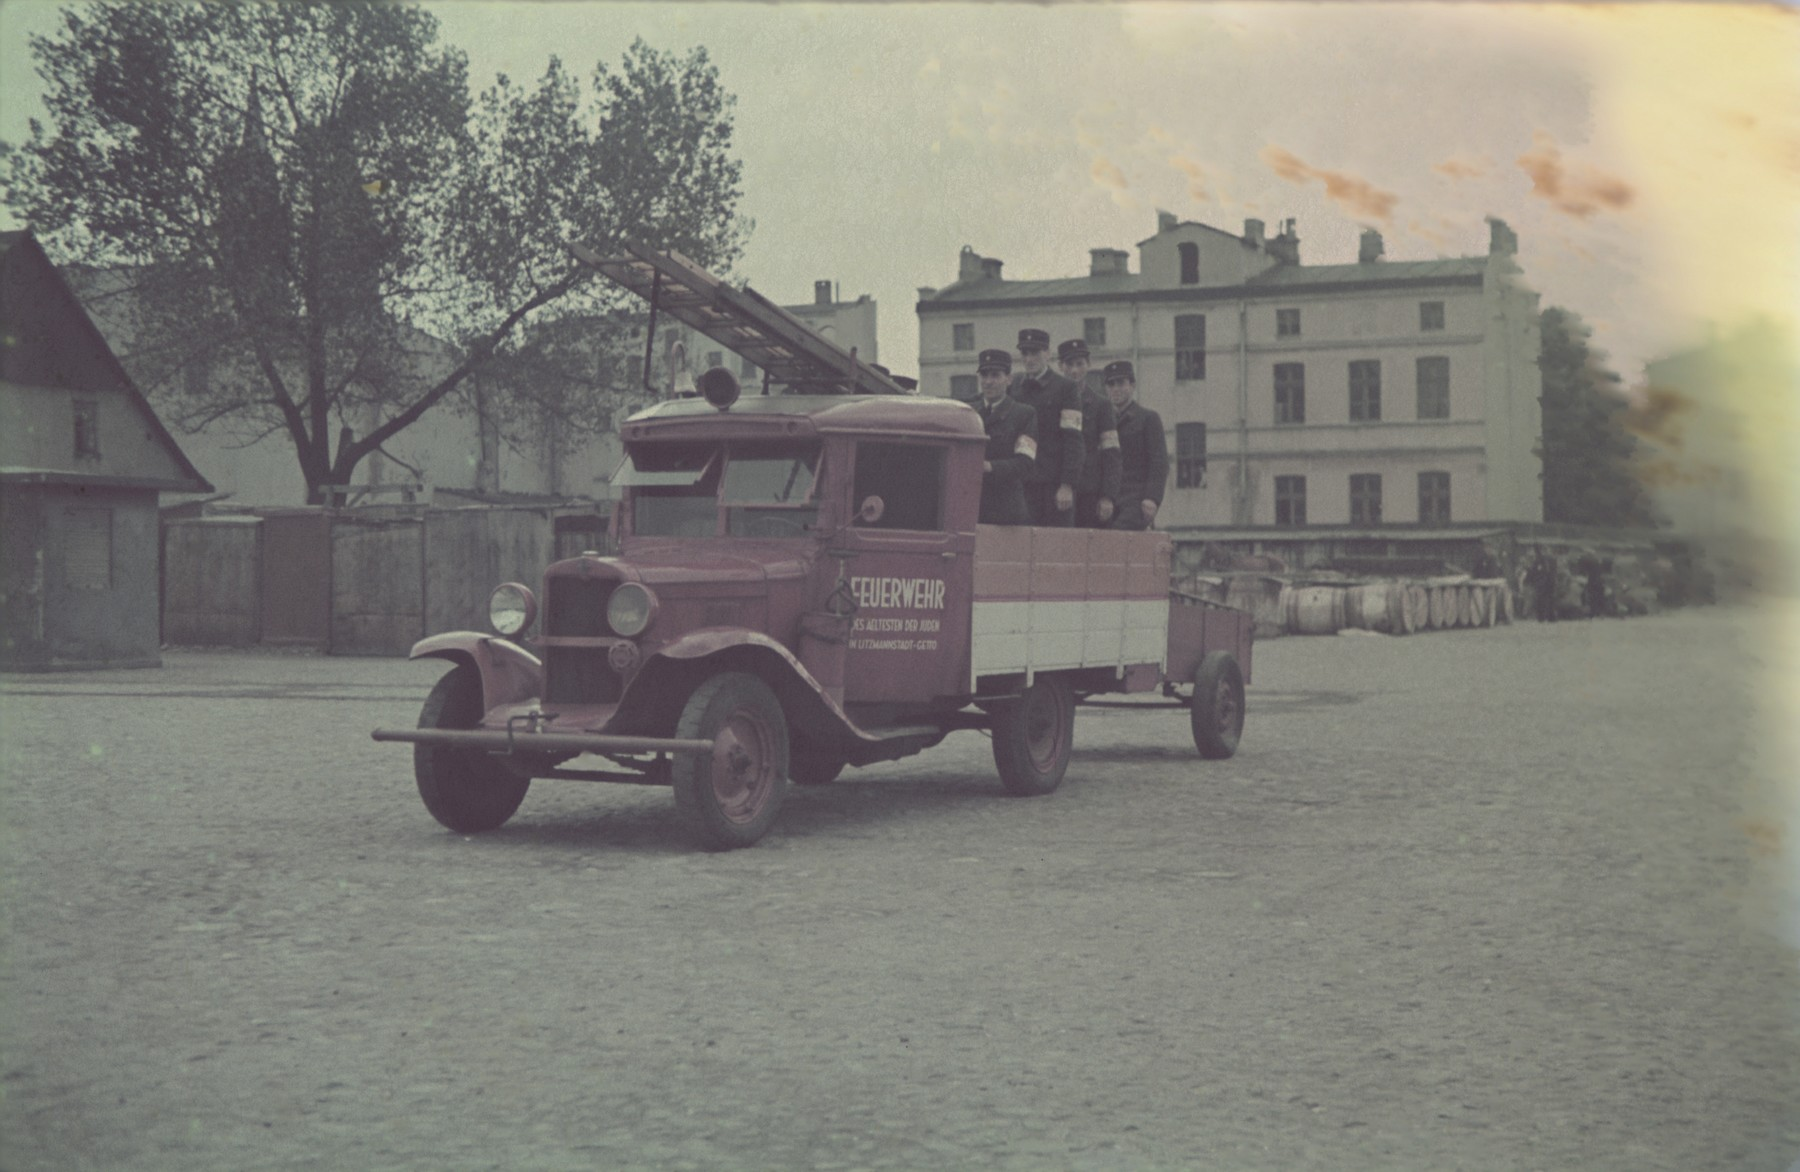 Ghetto firefighters ride in the back of a fire truck through the Lodz ghetto.